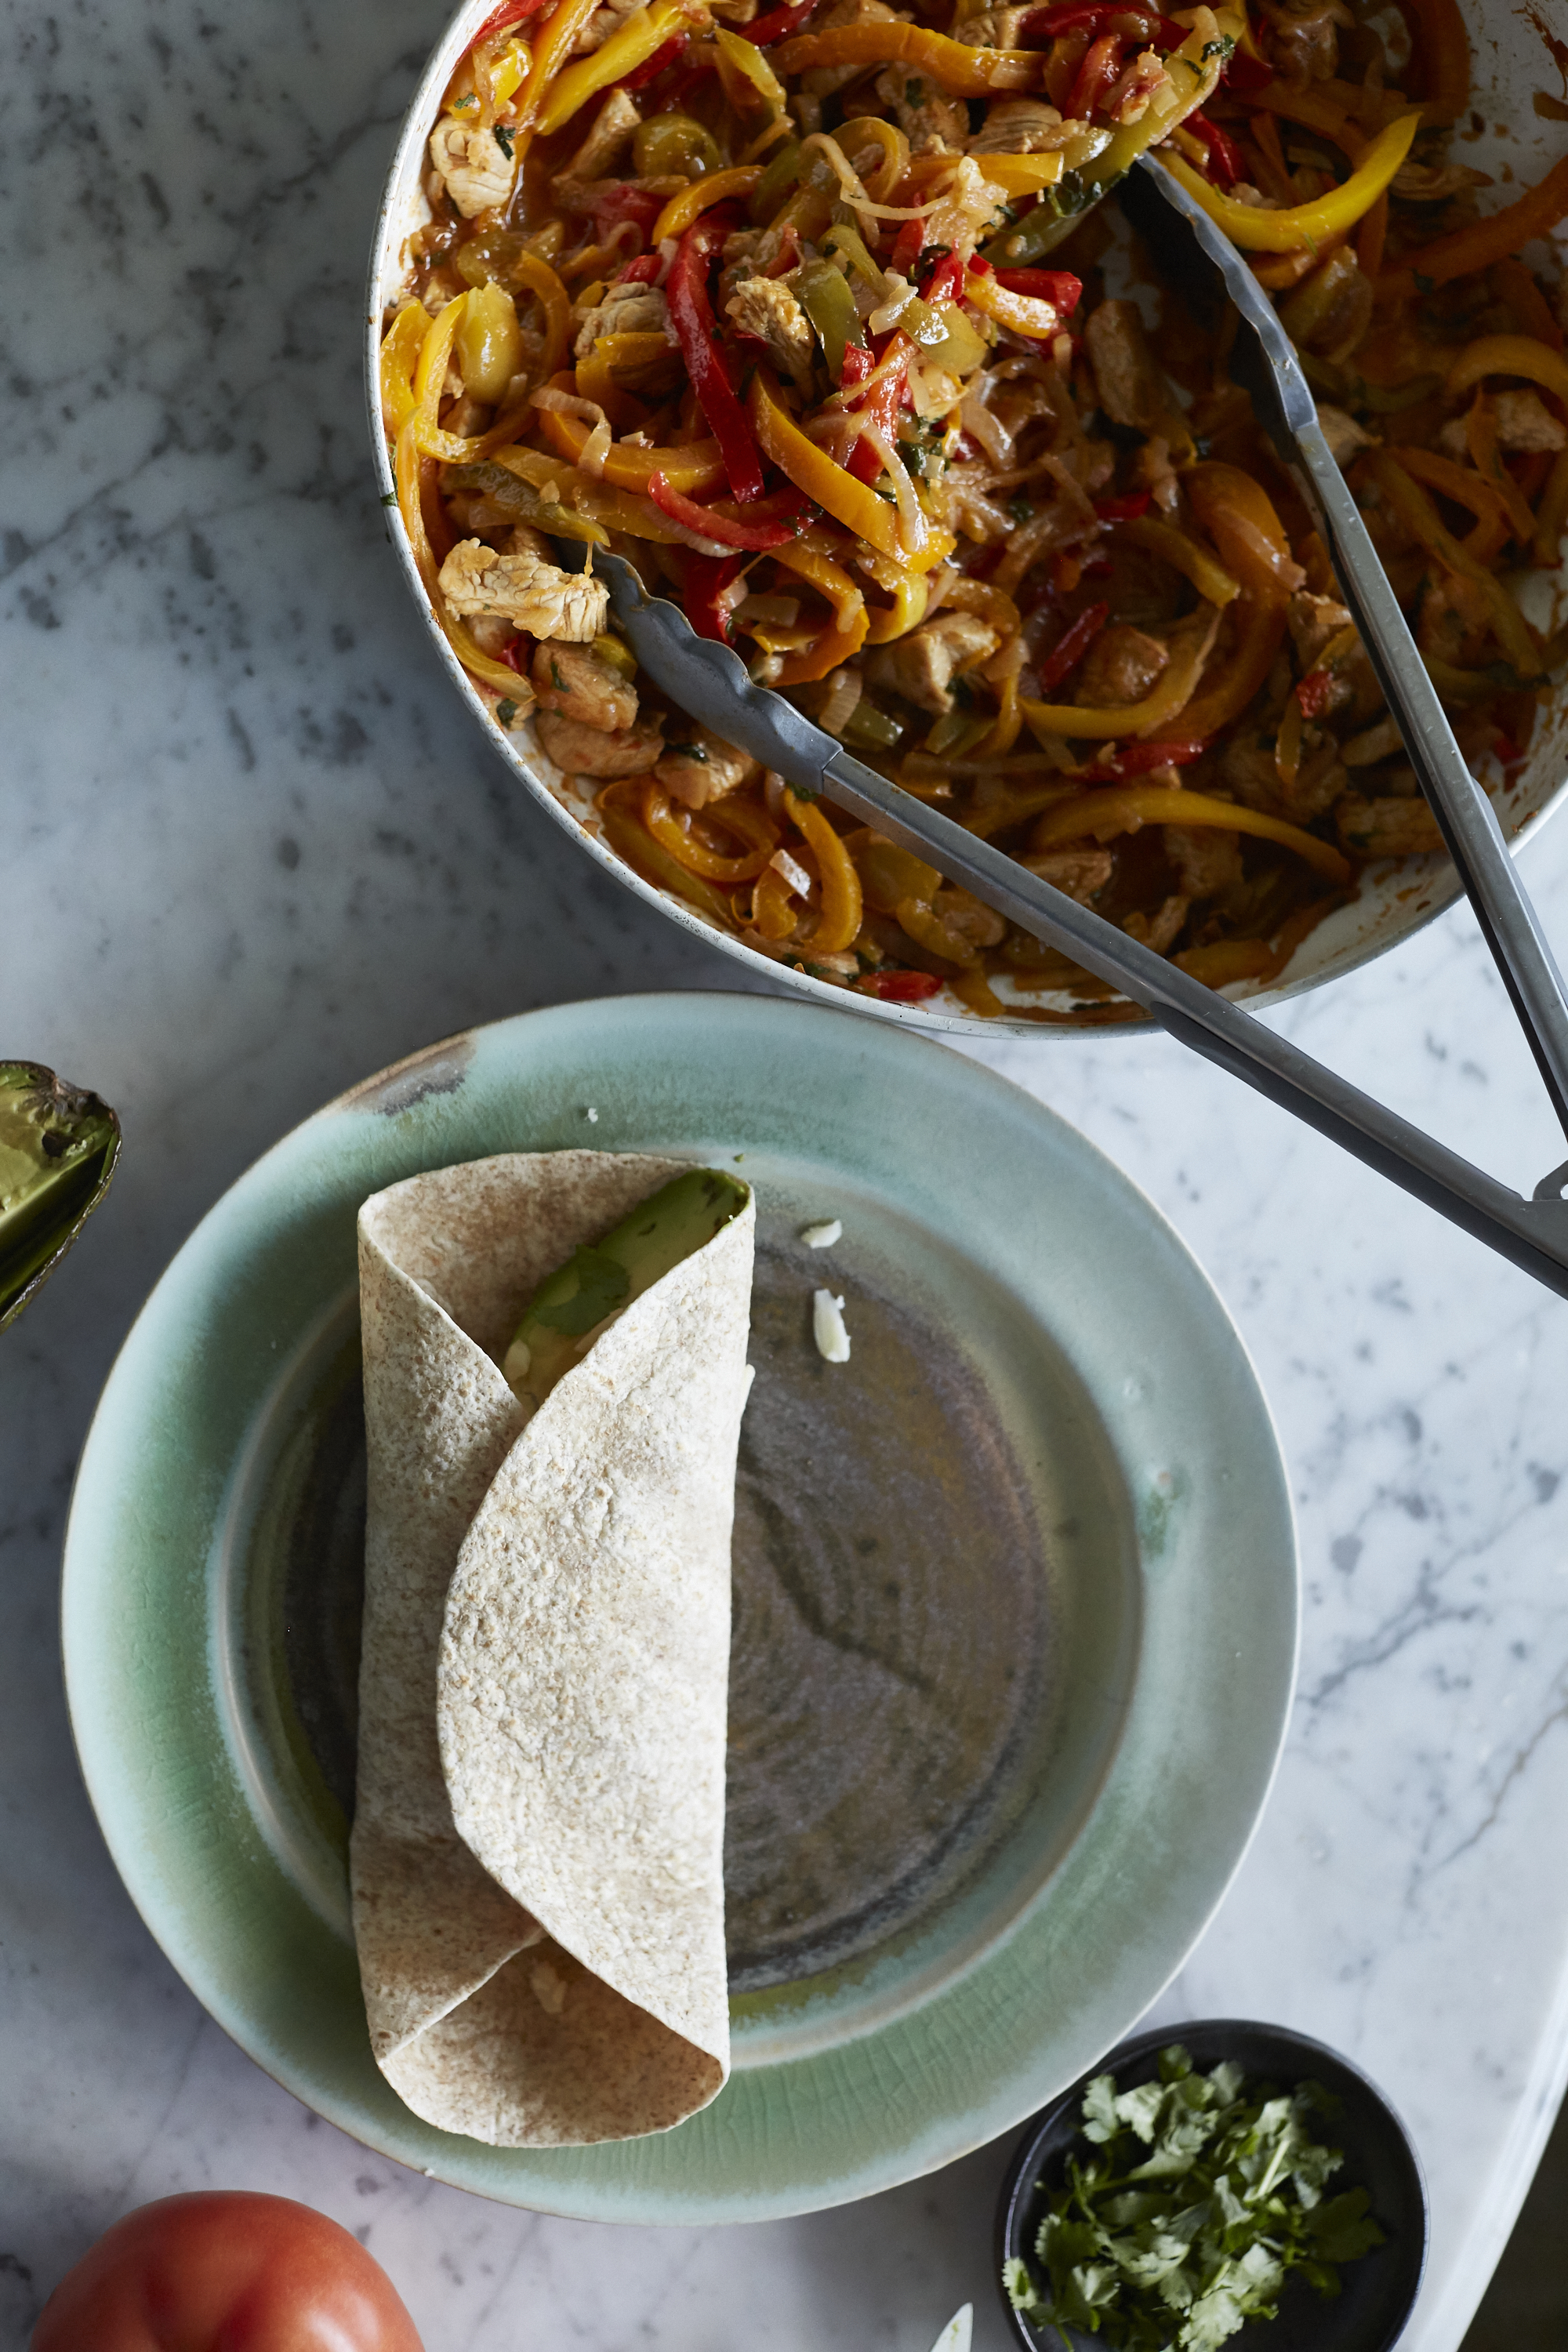 Foodsaver - Chicken Fajitas Foodsaver - Chicken Fajitass 3